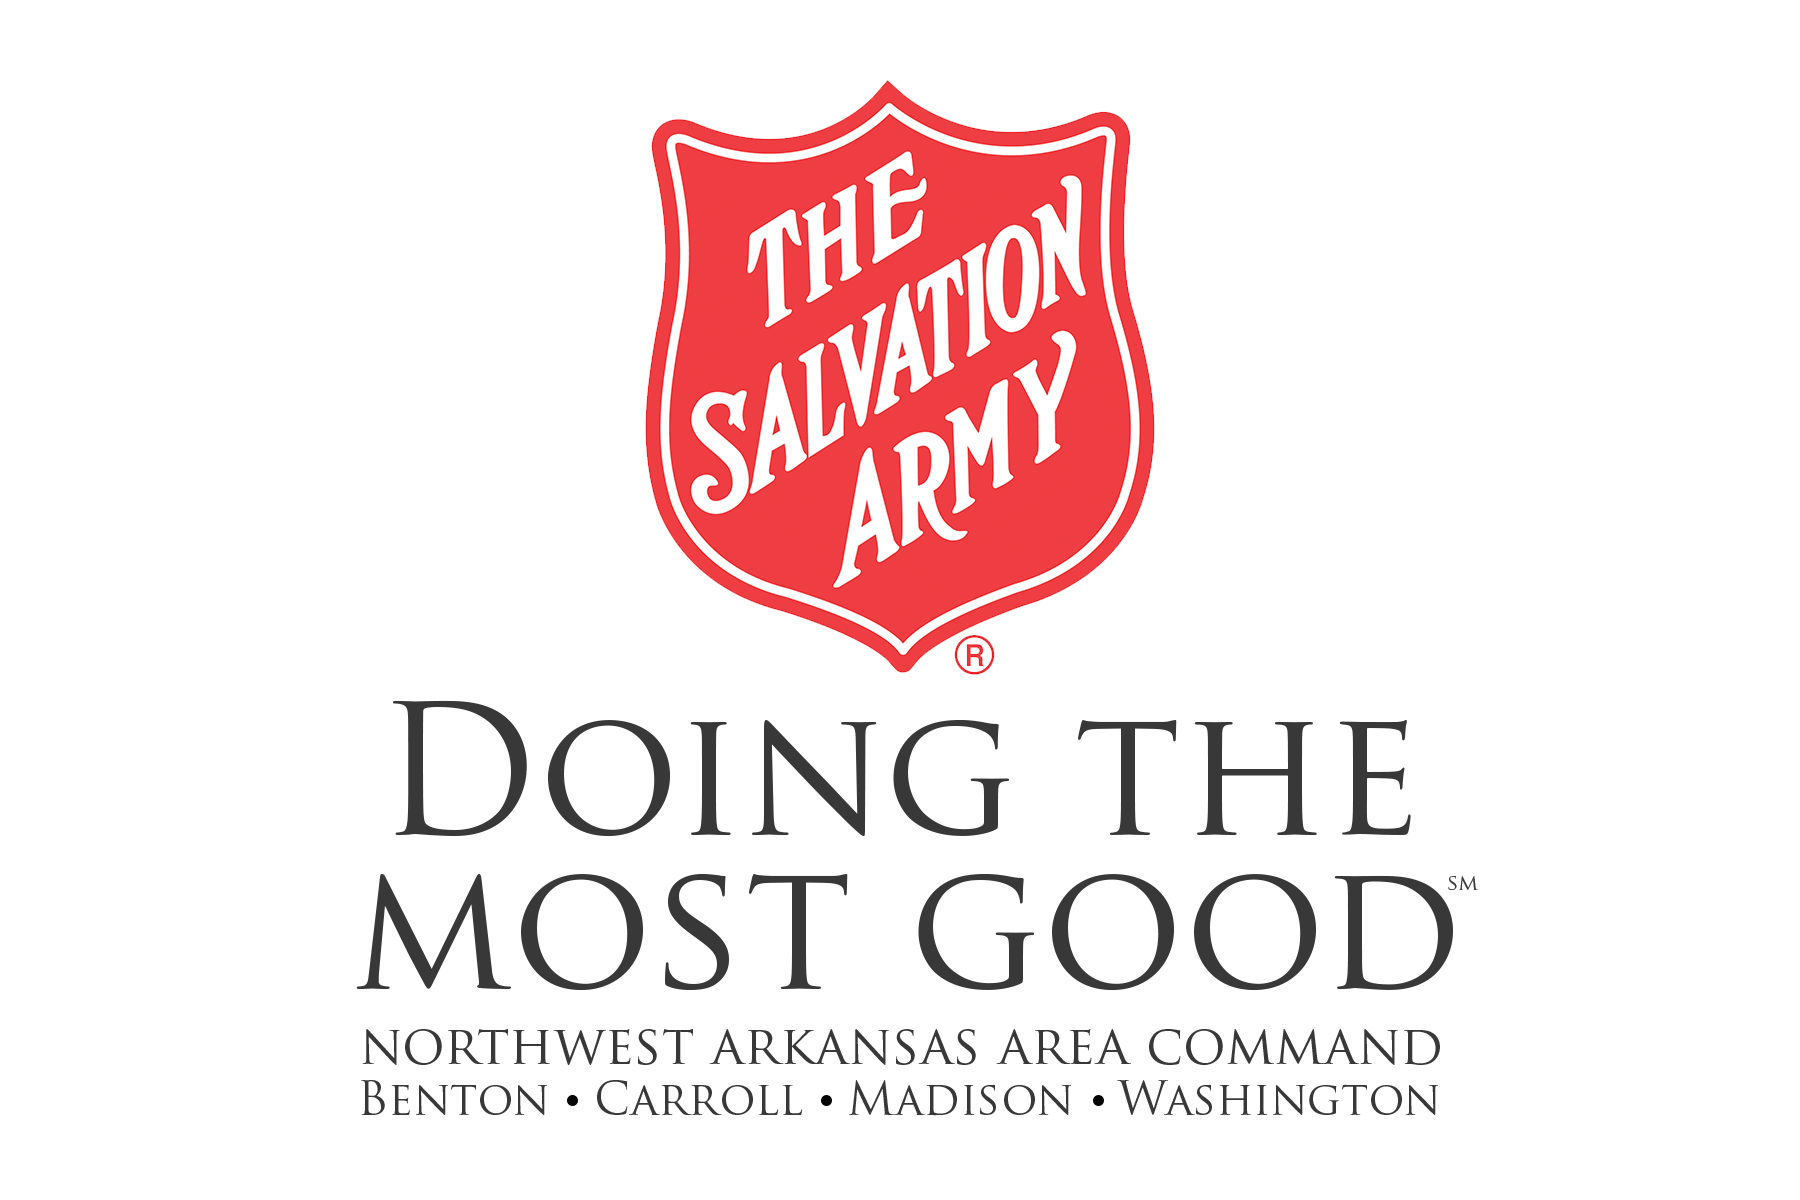 emblem the salvation army of doing the most good png logo #5167